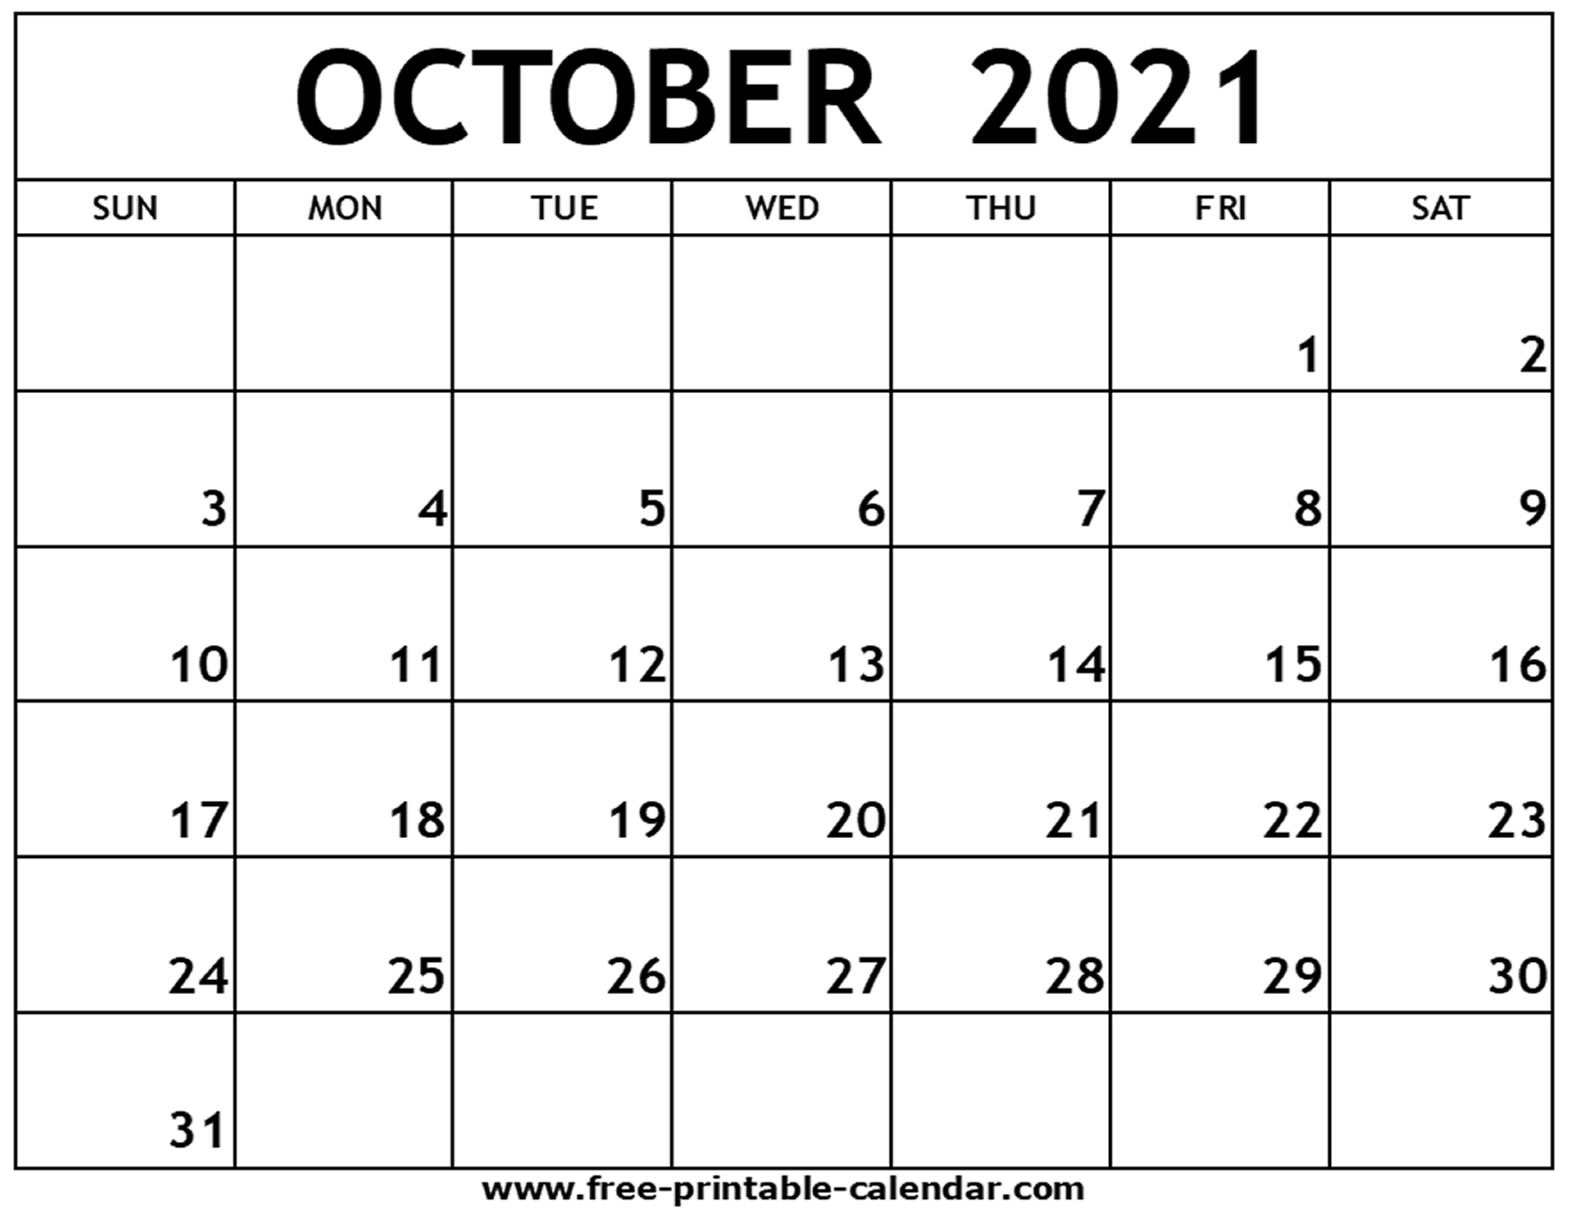 Catch Free Printable October 2021 Calendar